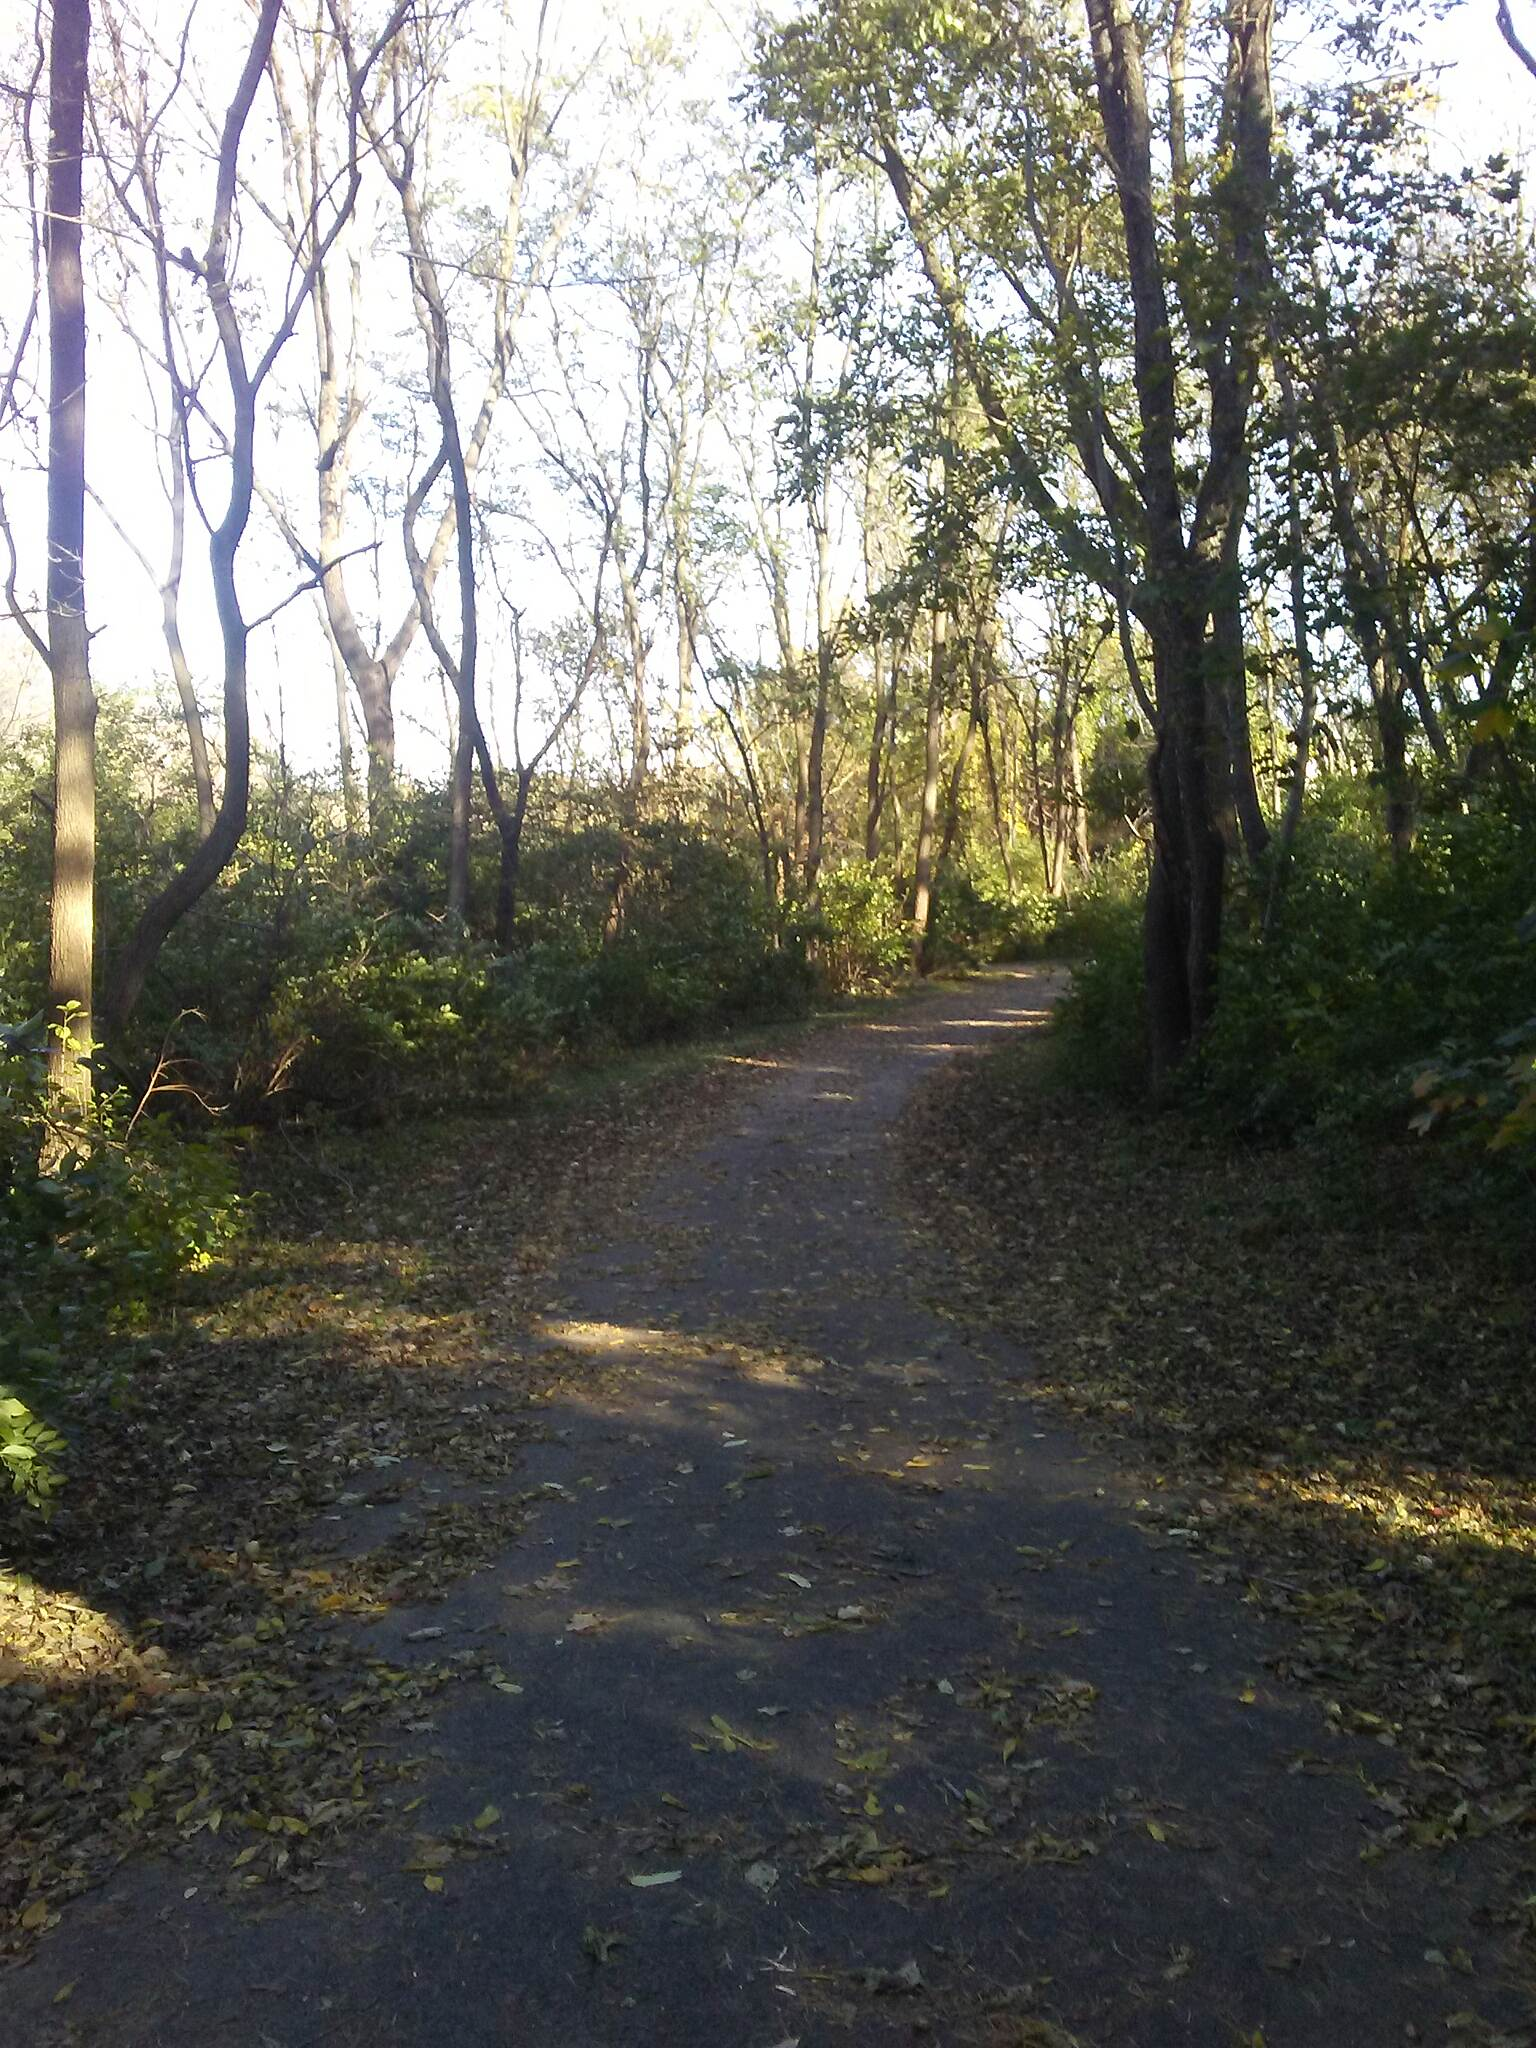 Manheim Township Community Park Trail Manheim Twp. Community Park Trail The portion of trail that connects the loops at the northern and southern ends of the park passes through these woods. Taken Nov. 2017.